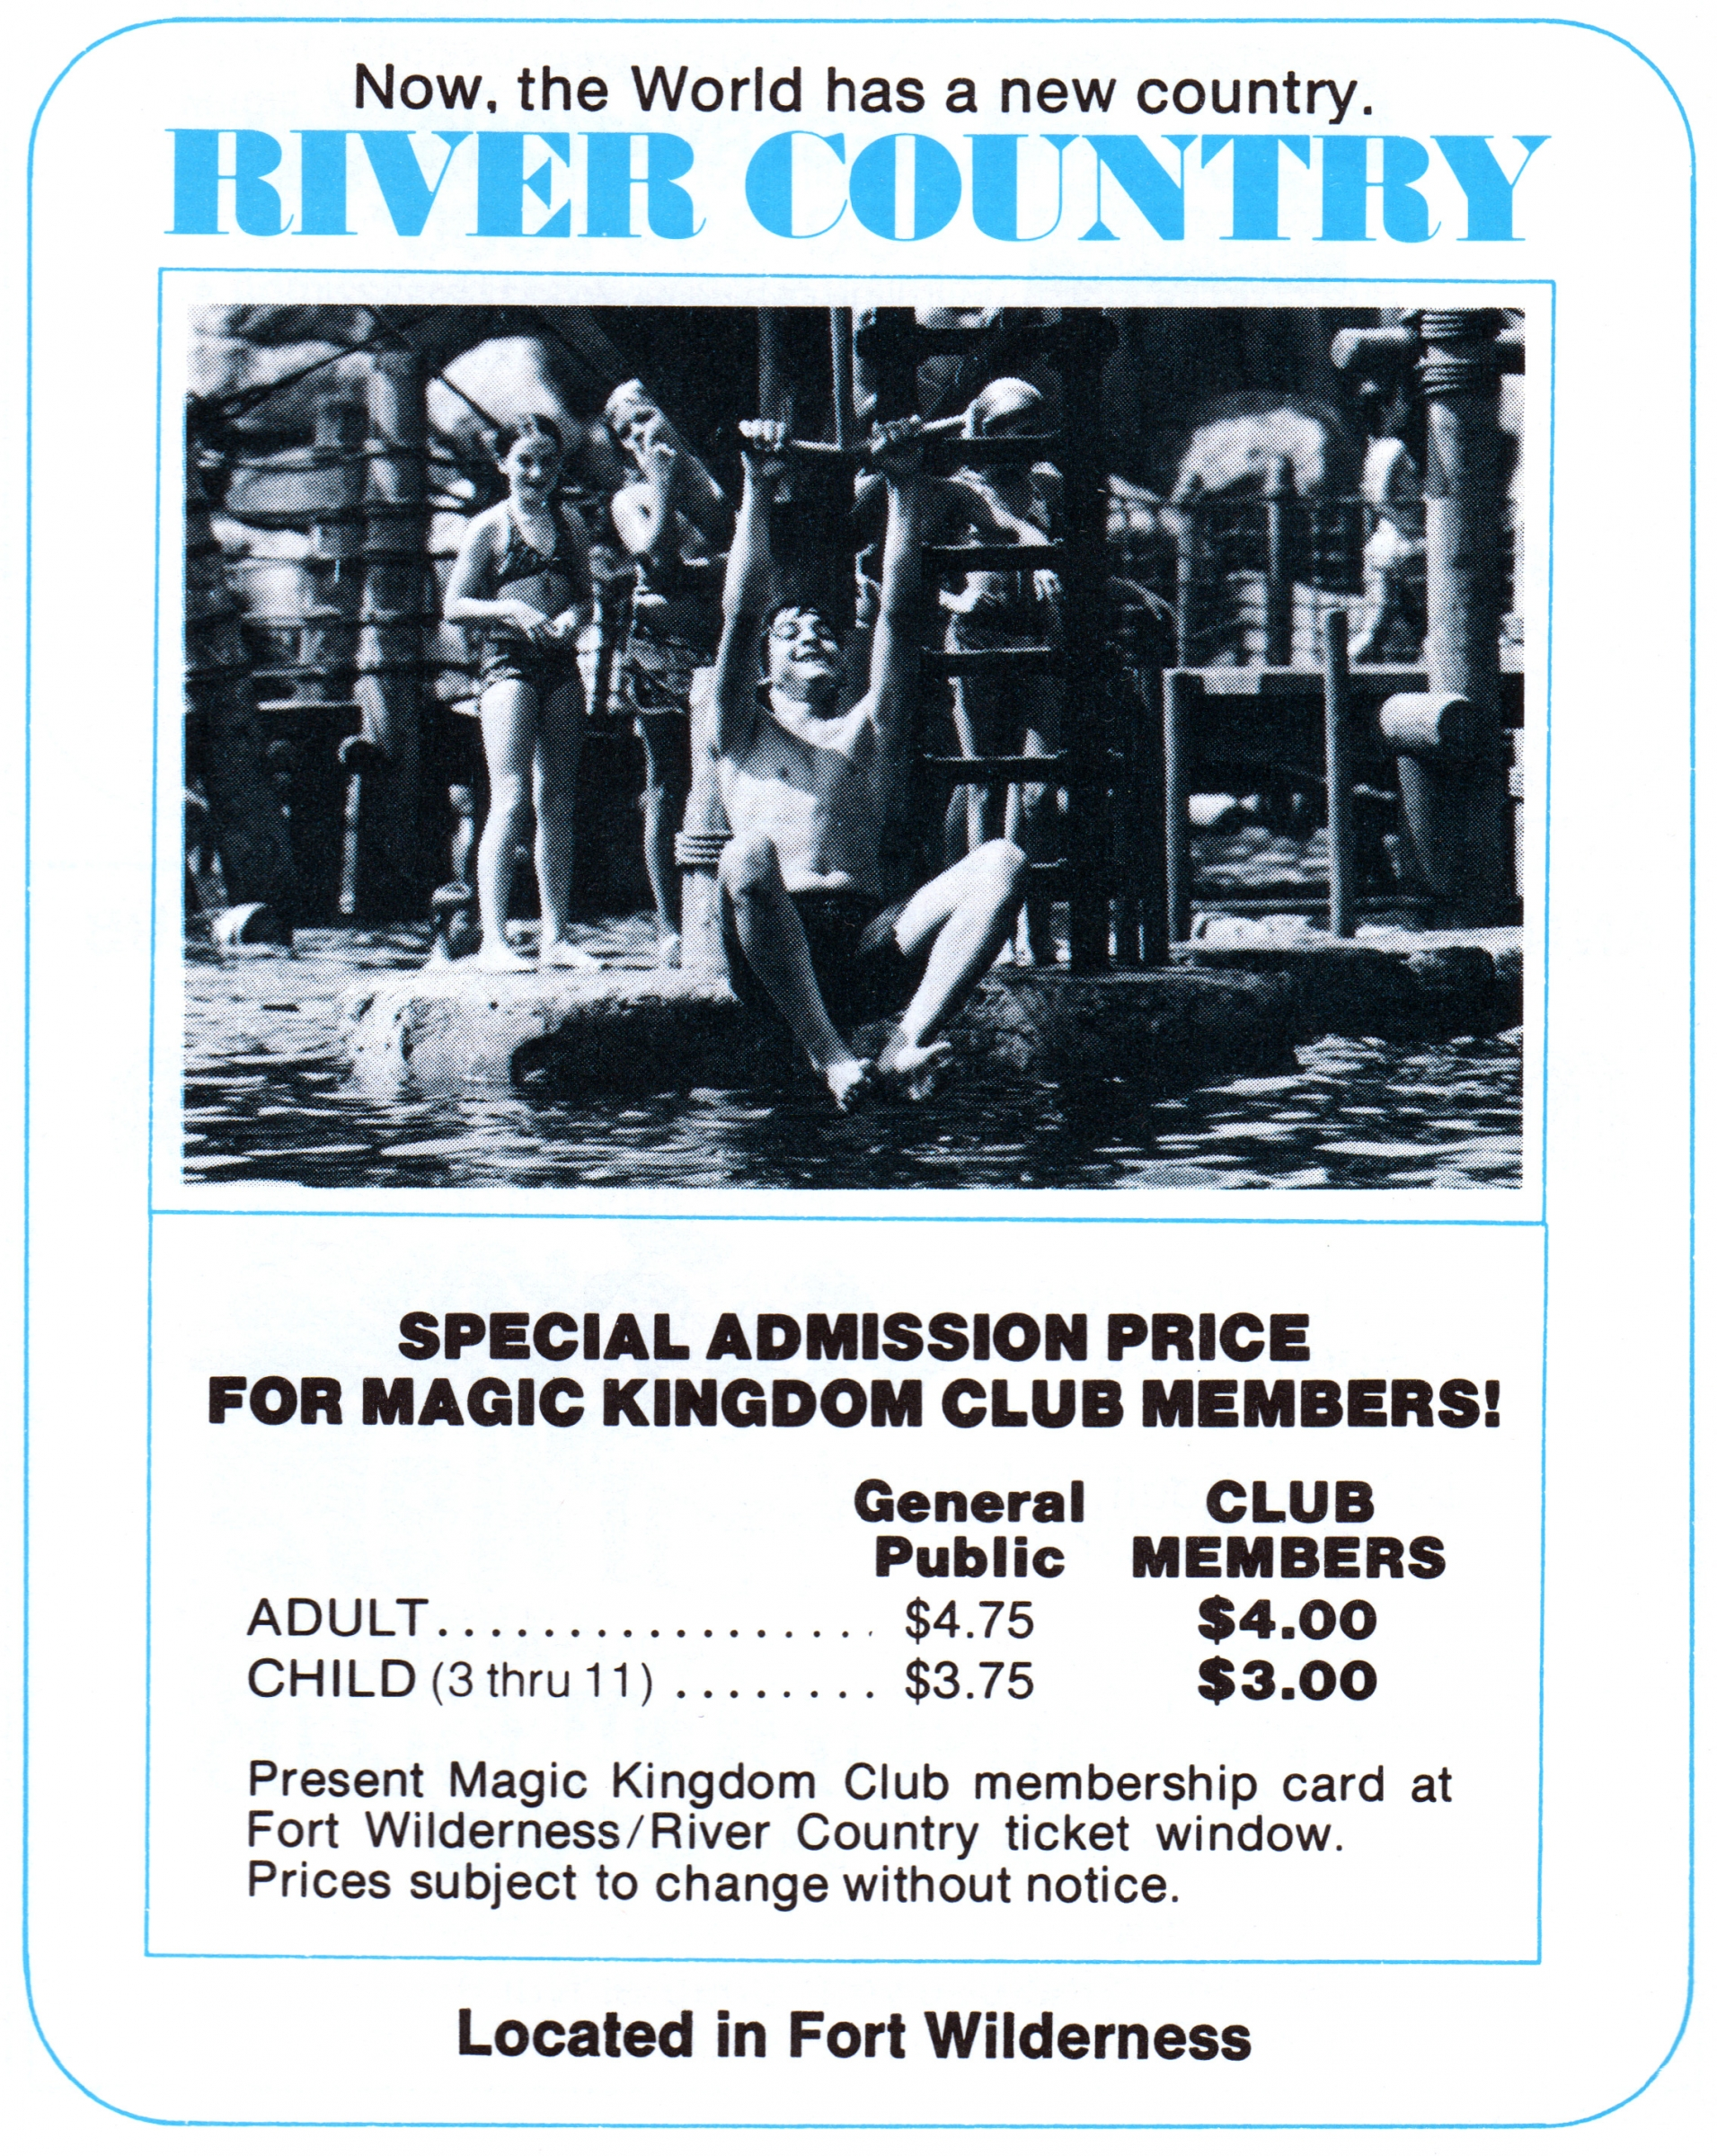 Advertisement for River Country, 1978. Combination tickets for River Country and Treasure Island (later known as Discovery Island) were also sold. (Photo: Tom Simpson, Flickr)